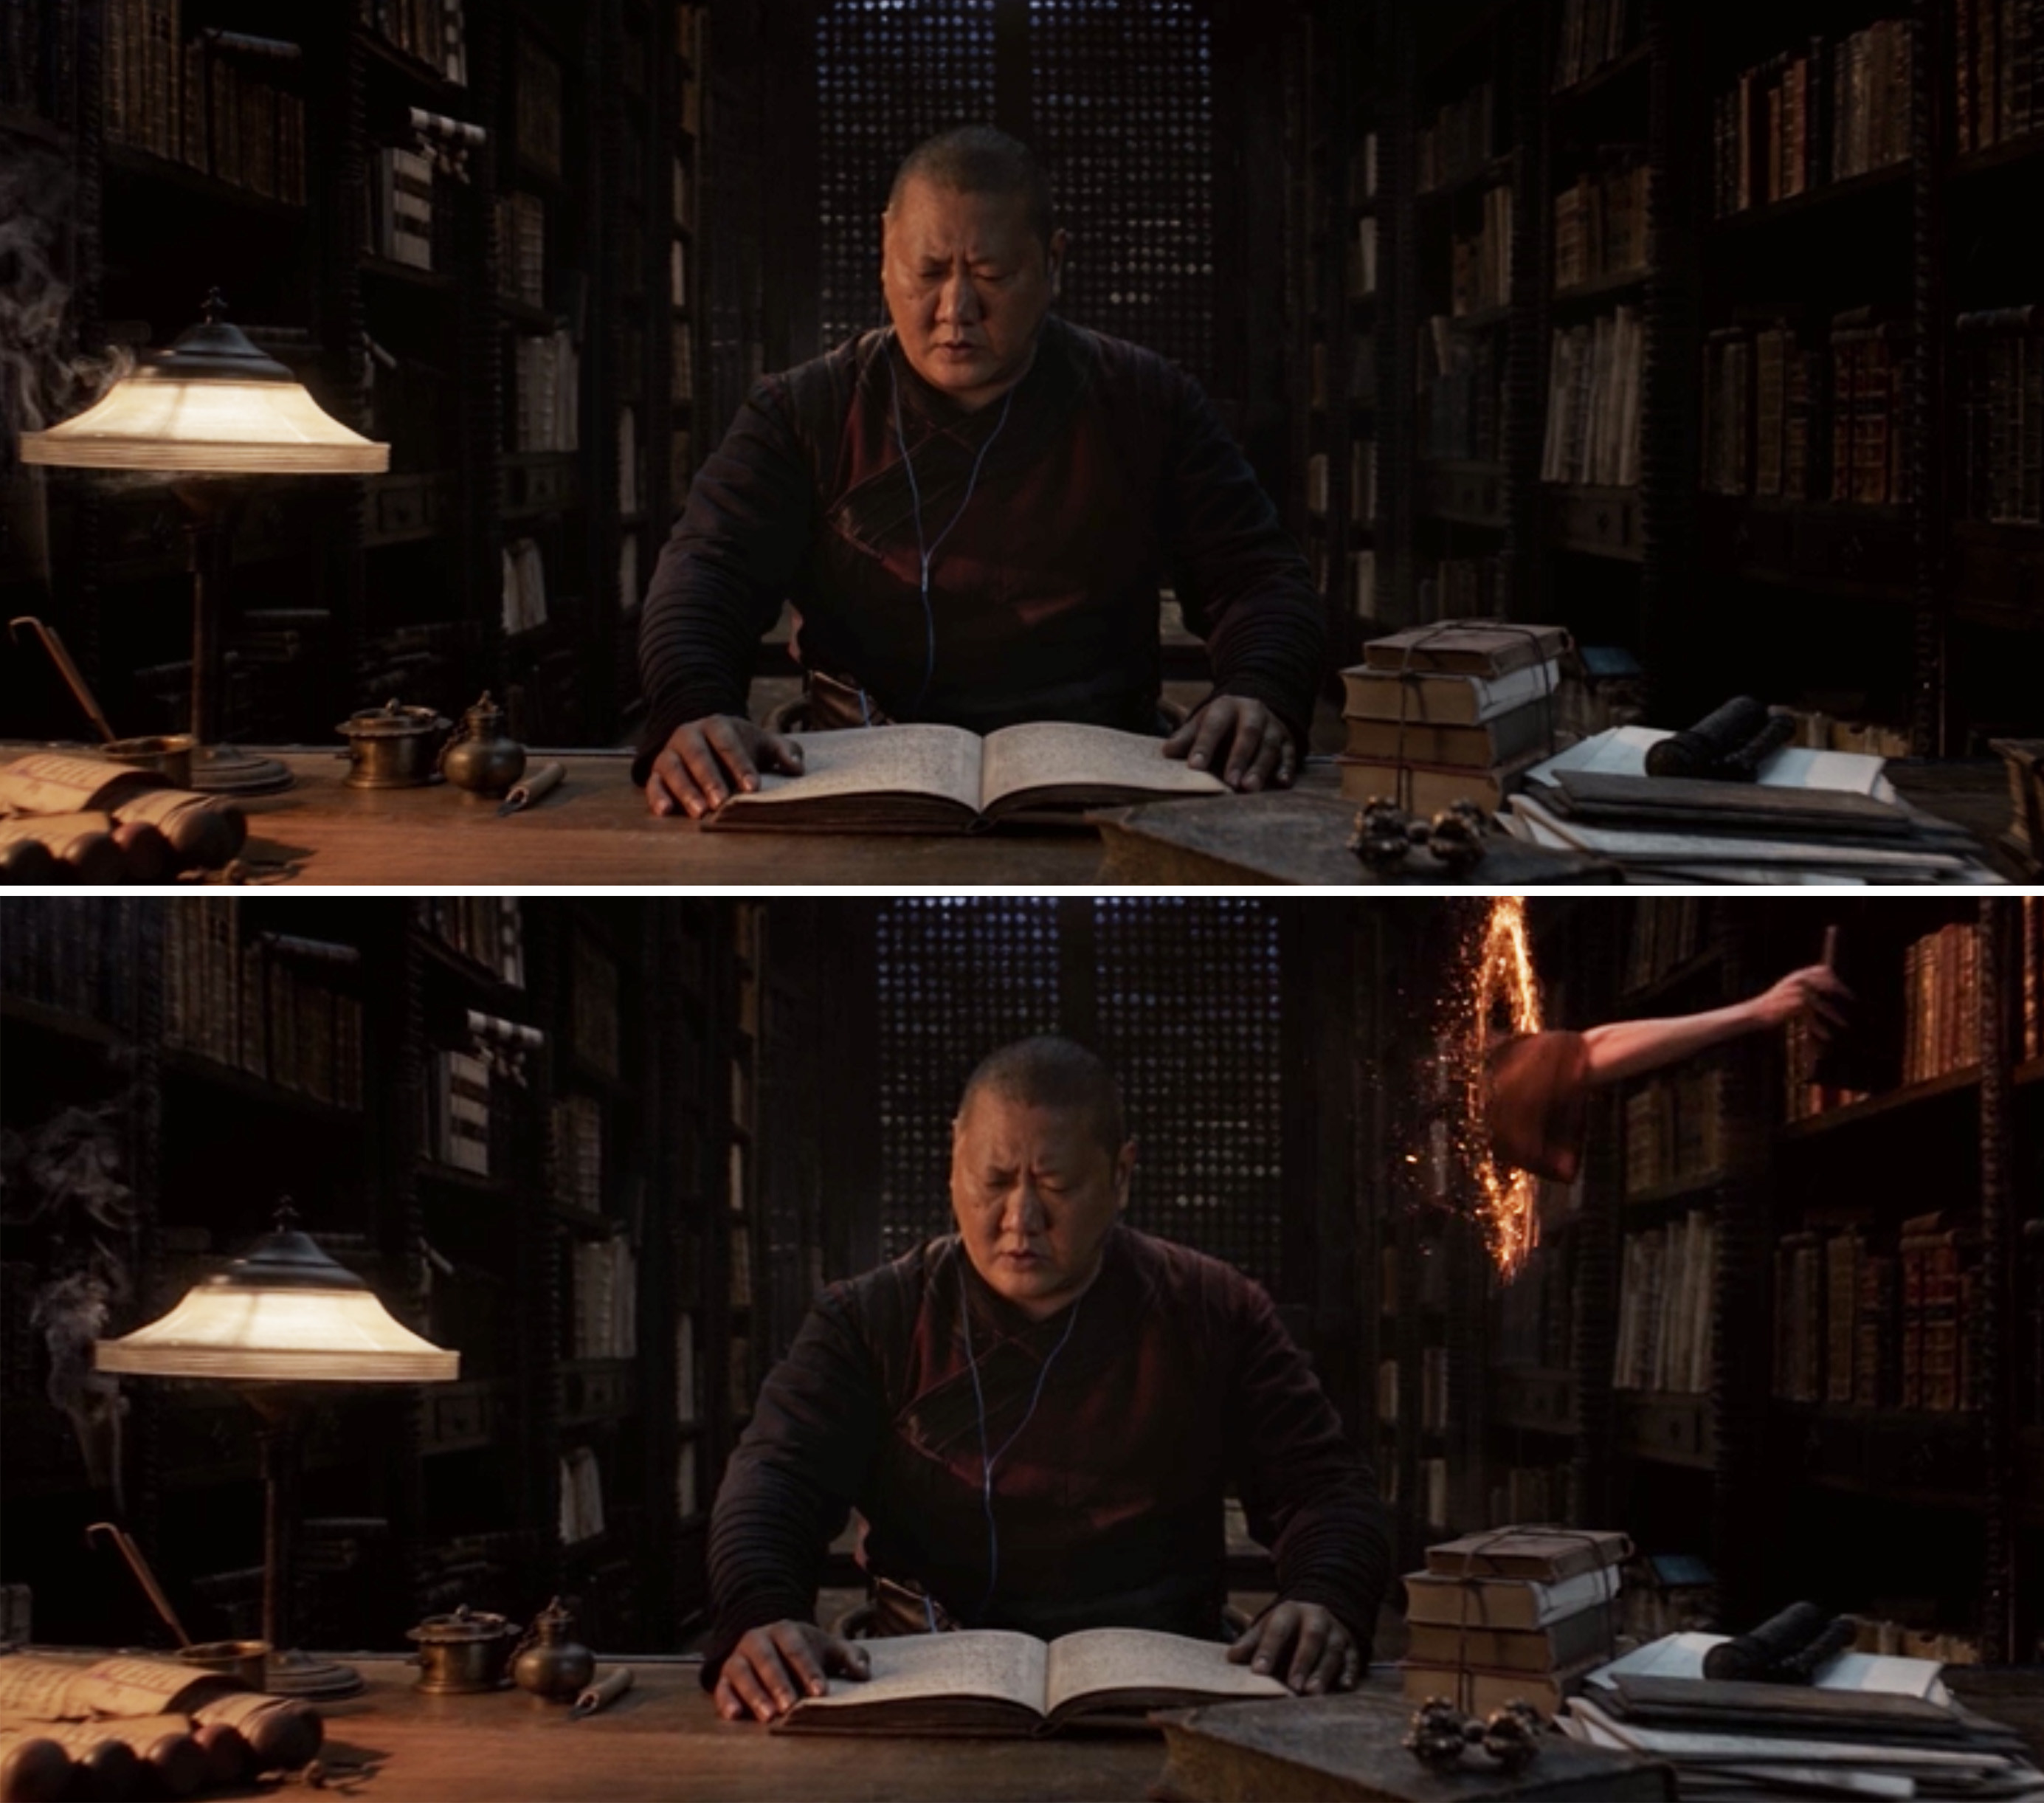 Wong reading and listening to music while Stephen takes a book